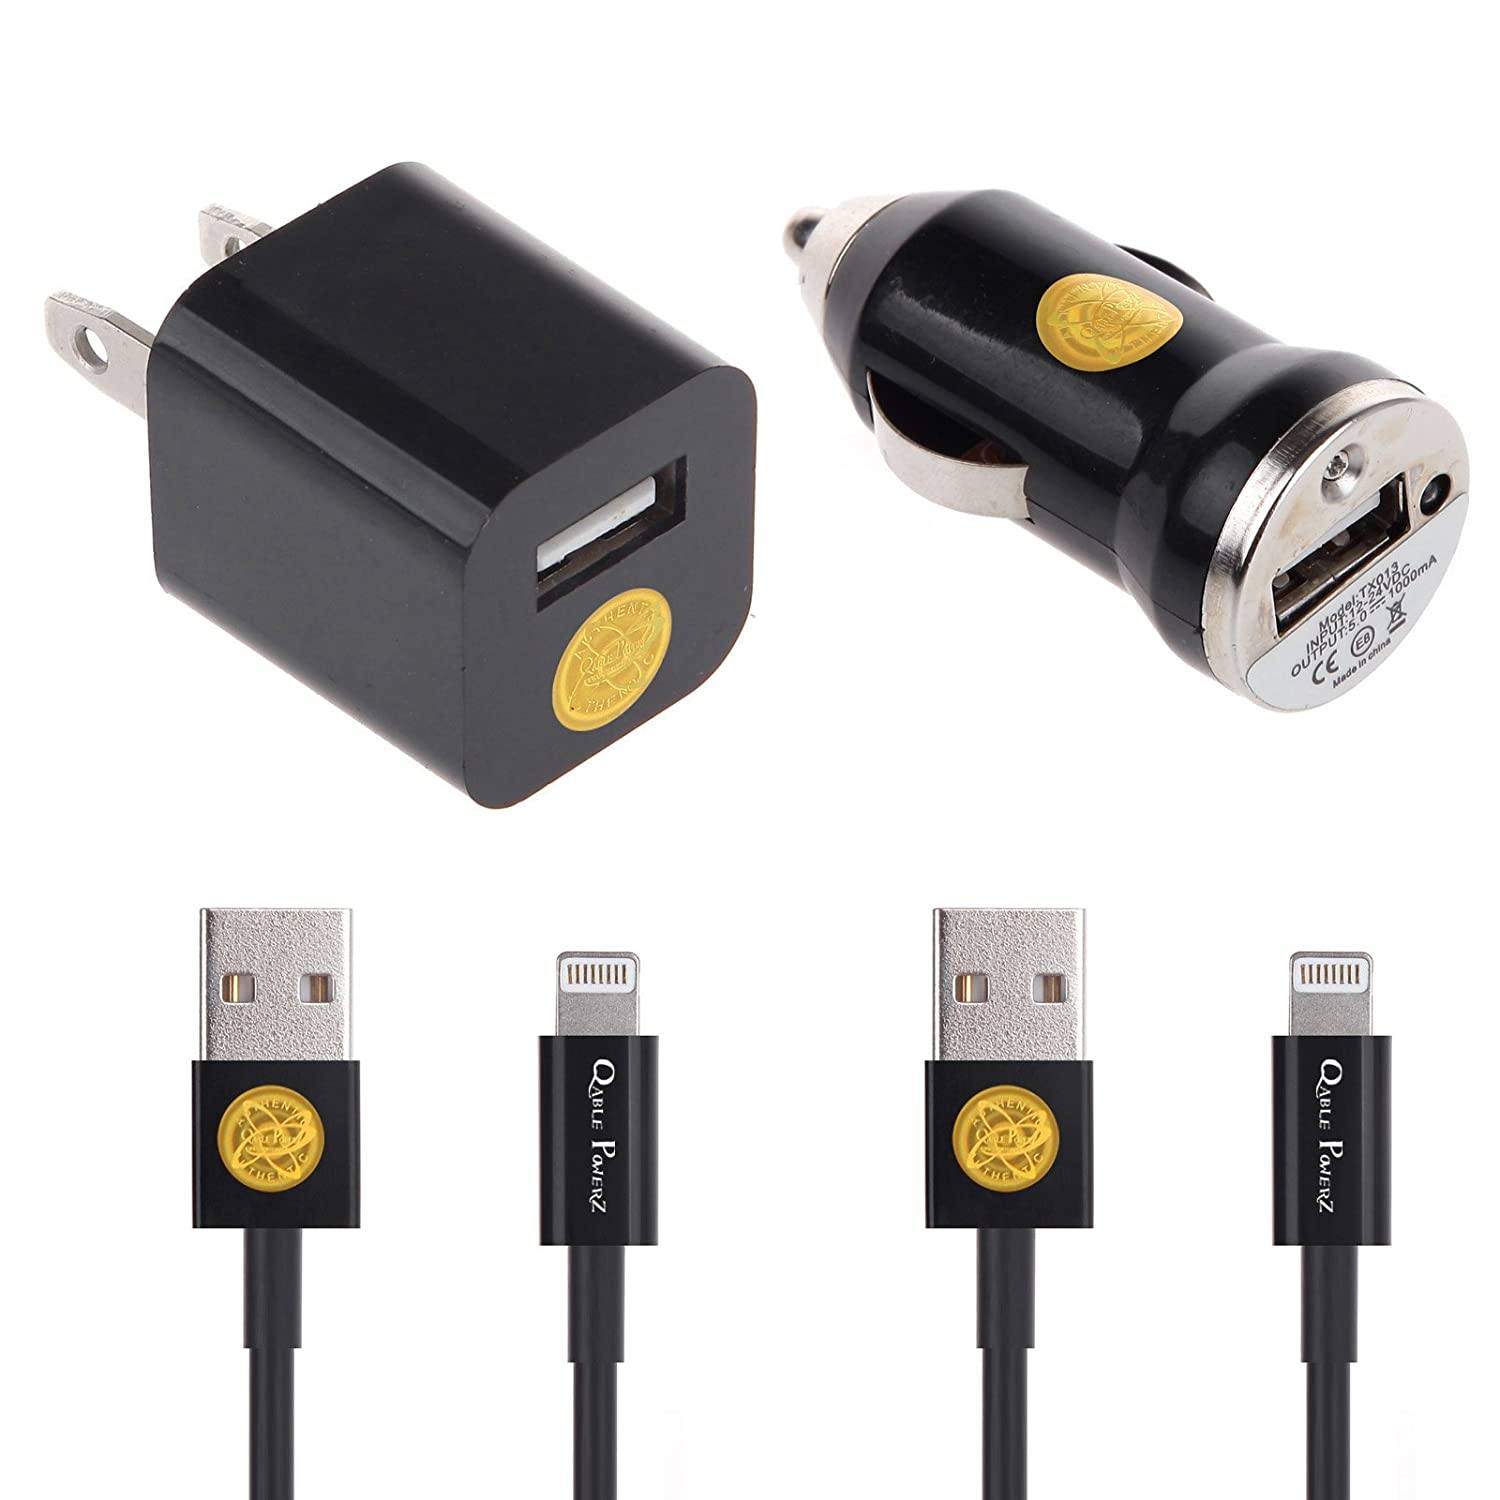 Car & Travel Charging Set for iPhone 5 5C 5S, iPhone 6, iPad 4, iPad Mini, iPod Touch 5/Nano 7, 8 pin to USB, With: (1) 3ft lightning cable, (1) 6ft lightning cable, (1) Car charger, (1)Travel charger (Black)